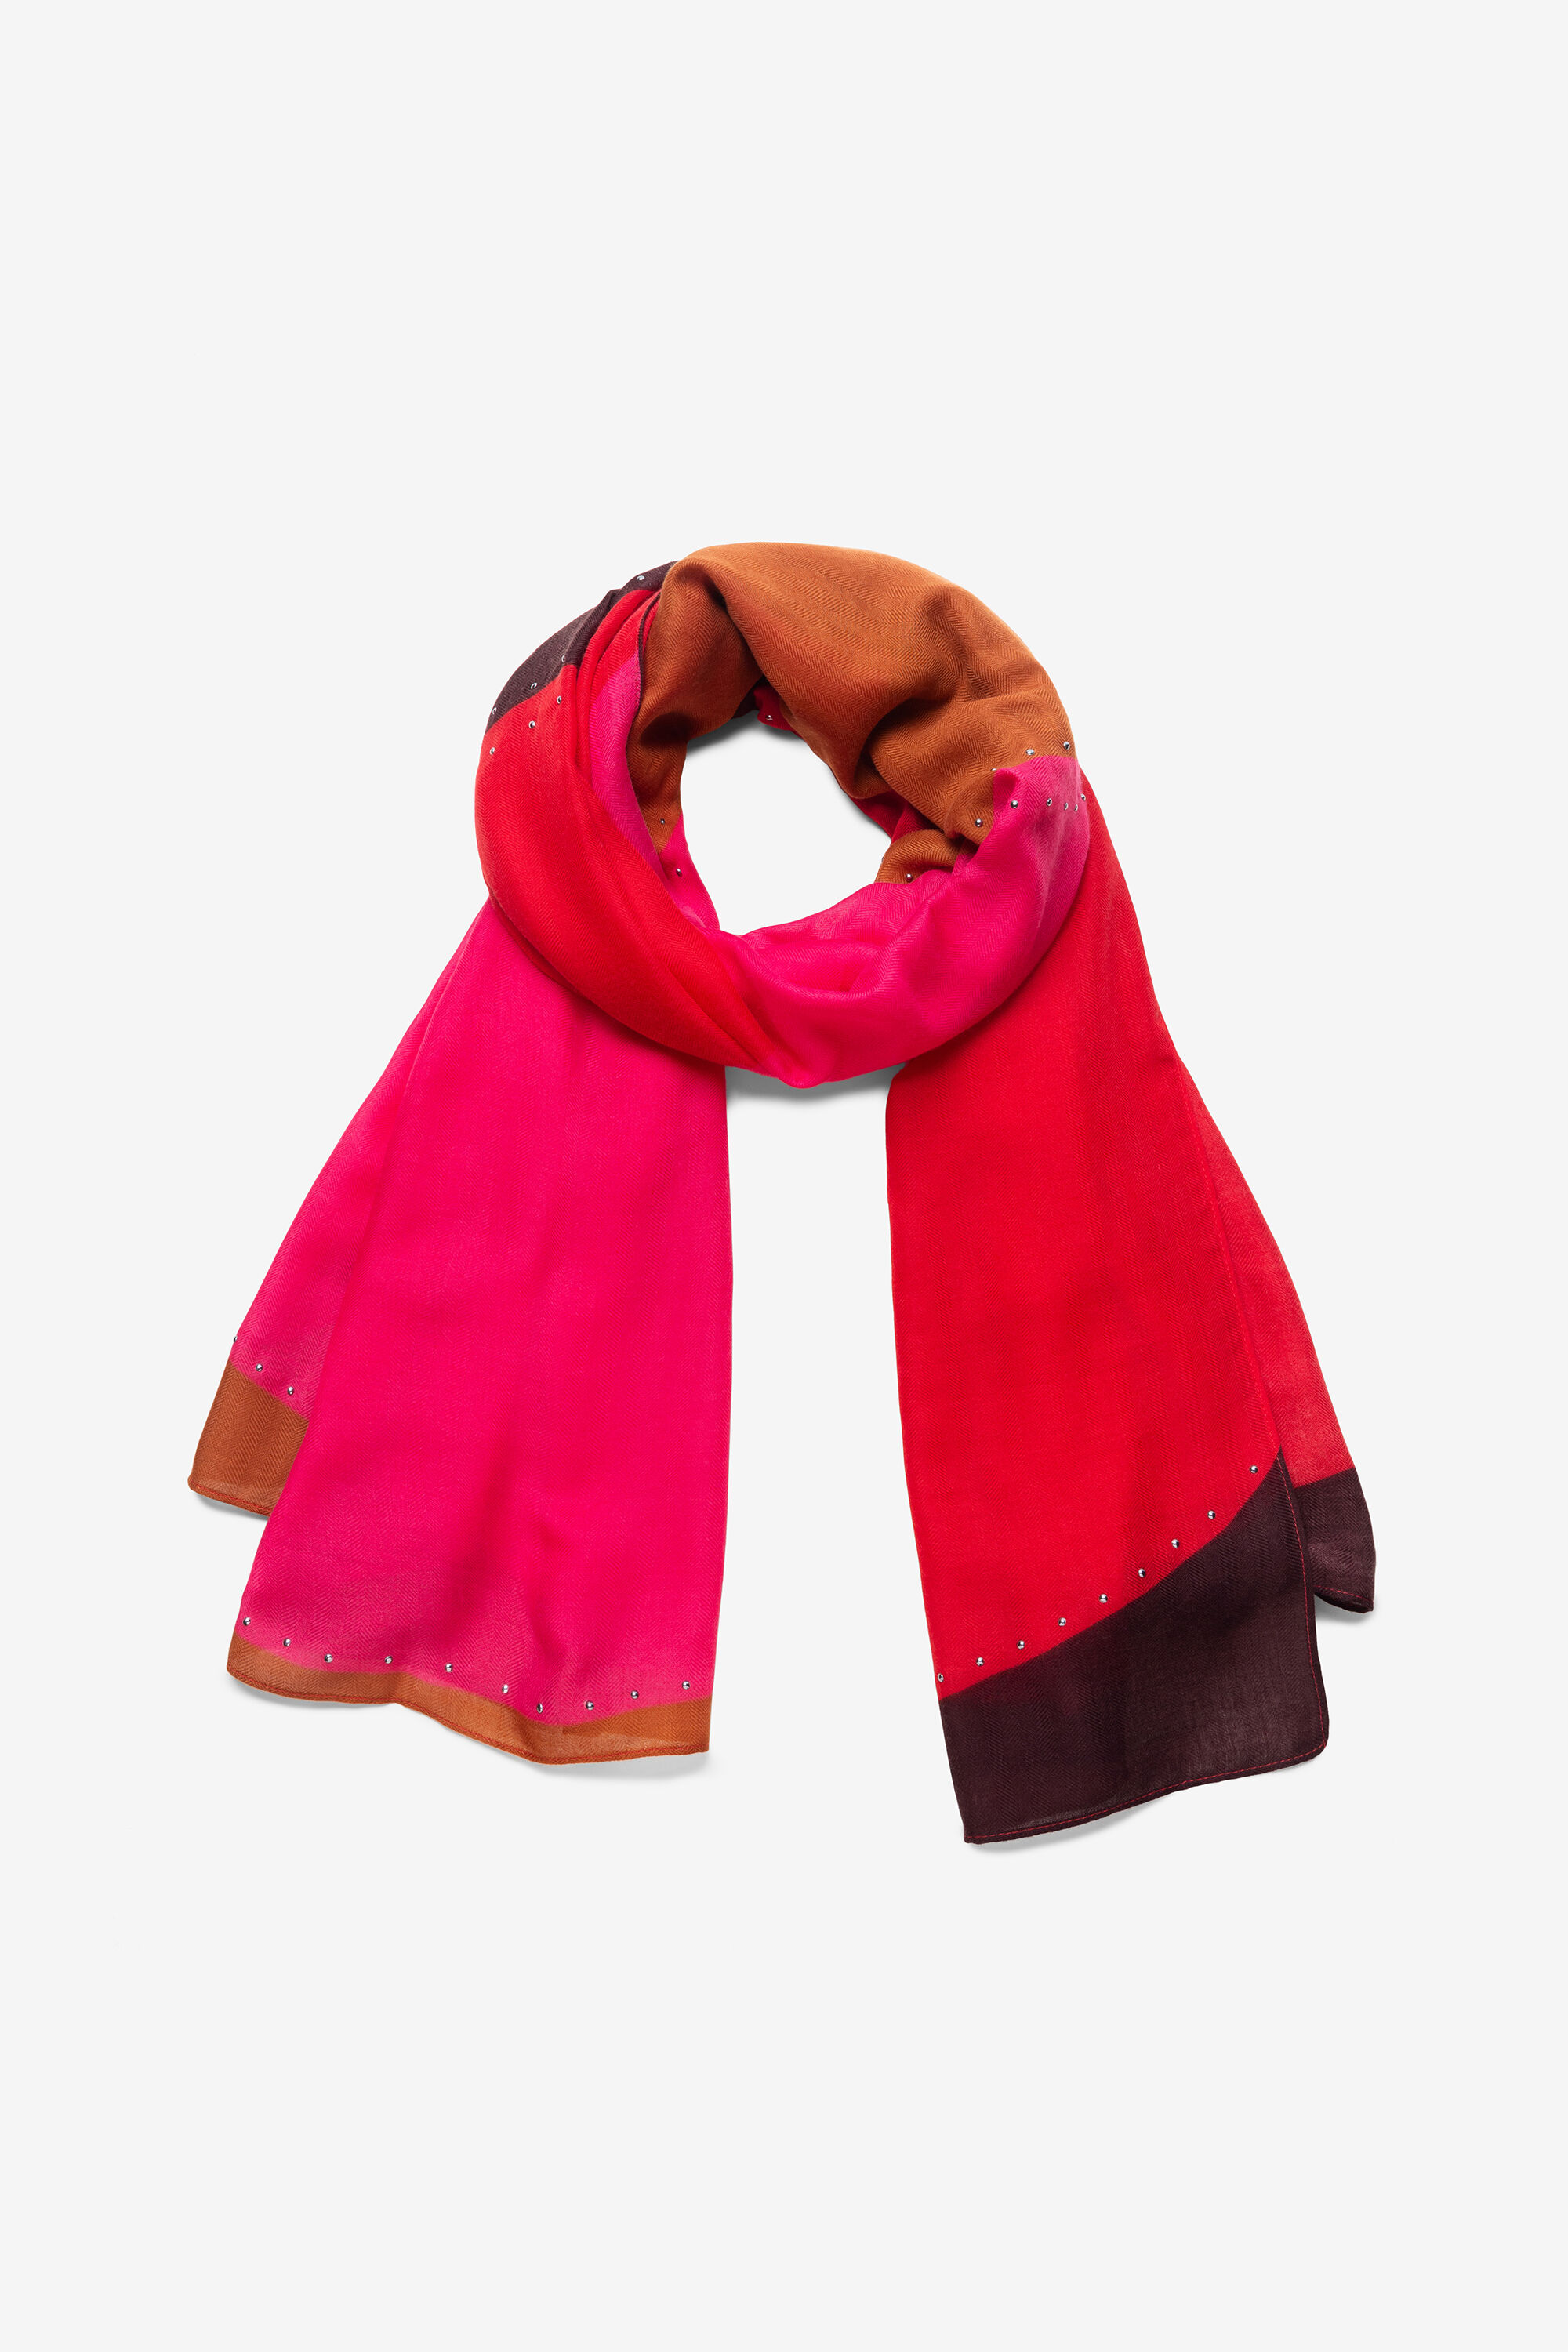 Foulard logomaniac clous - RED - U